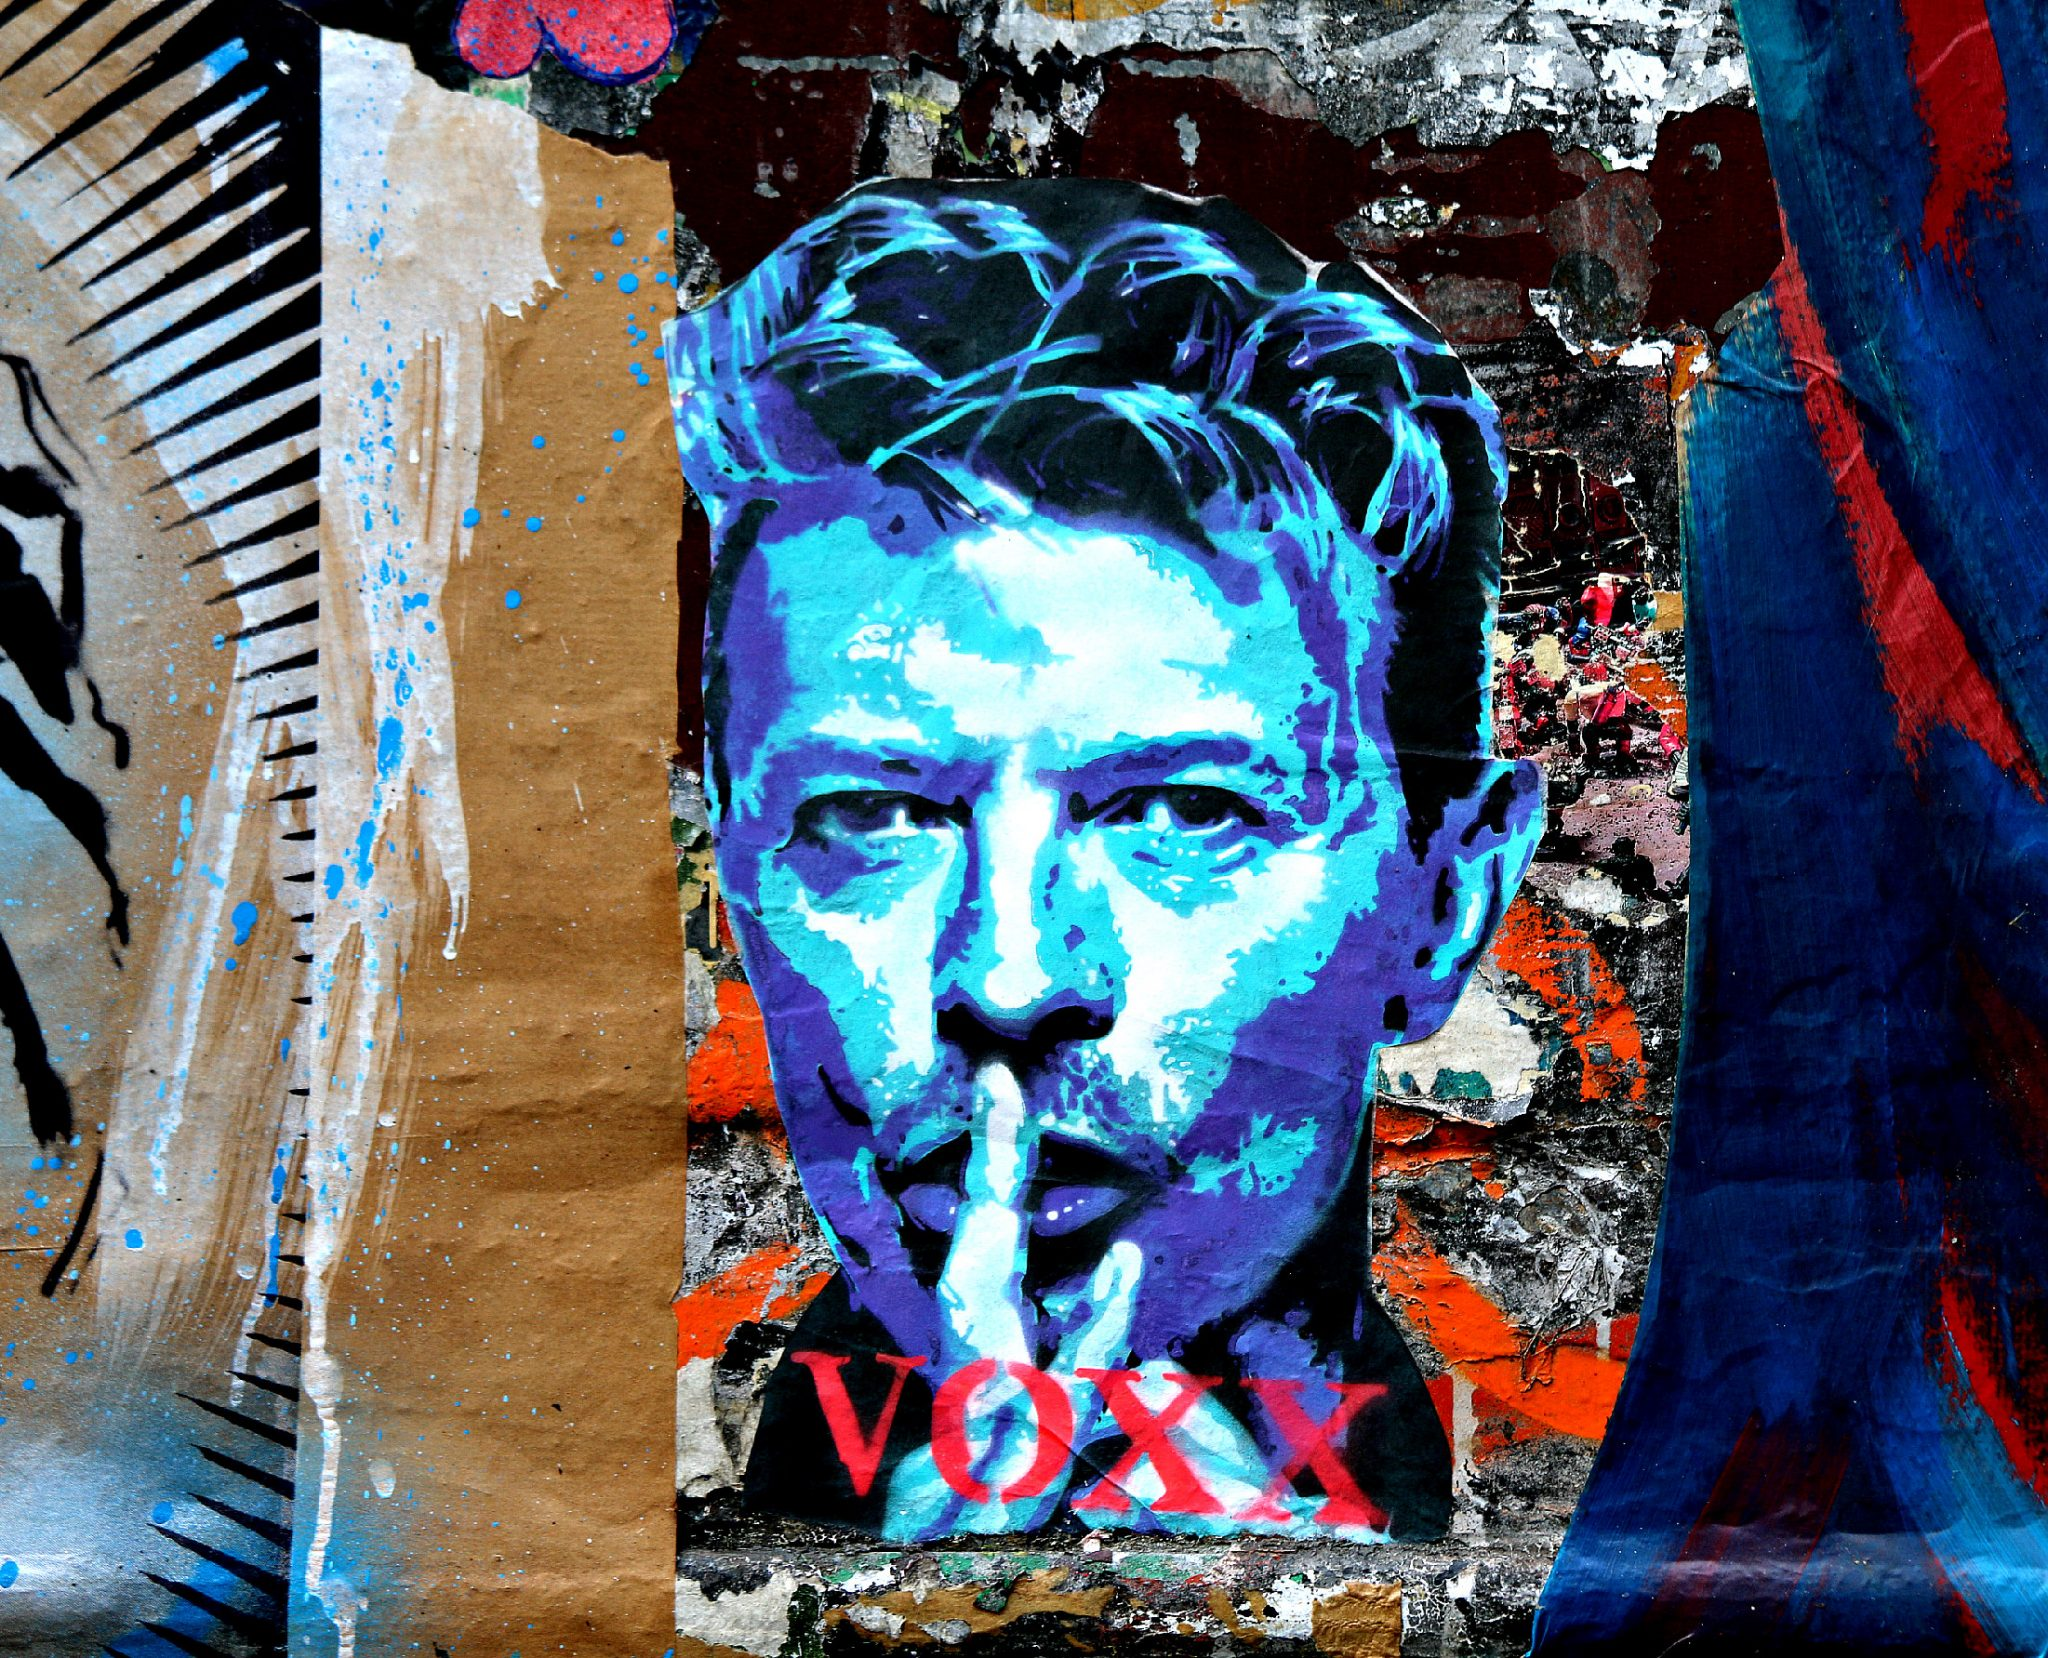 où trouver du street art à shoreditch fournier street David Bowie Voxx Romana